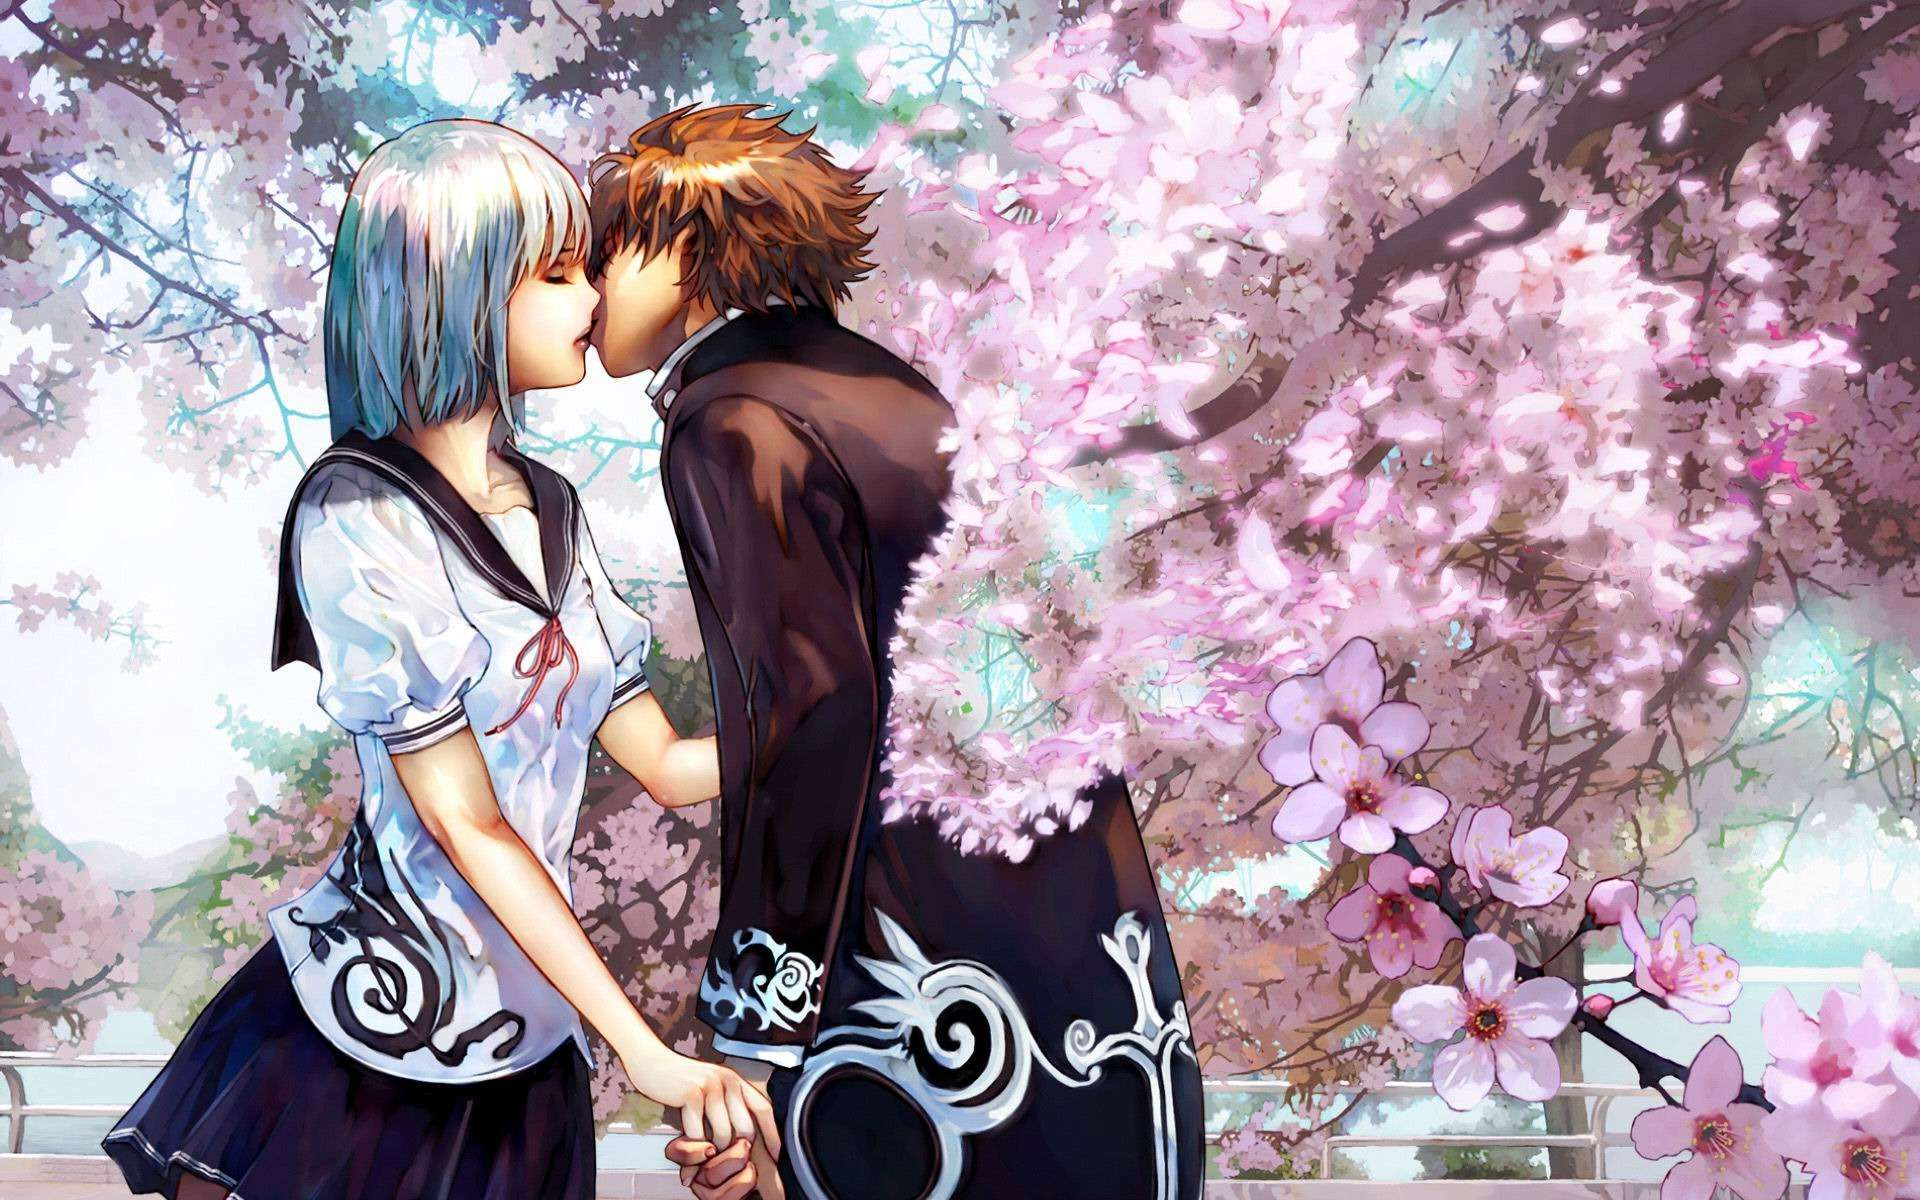 Anime Love Wallpapers: Cute Anime Couple Wallpaper